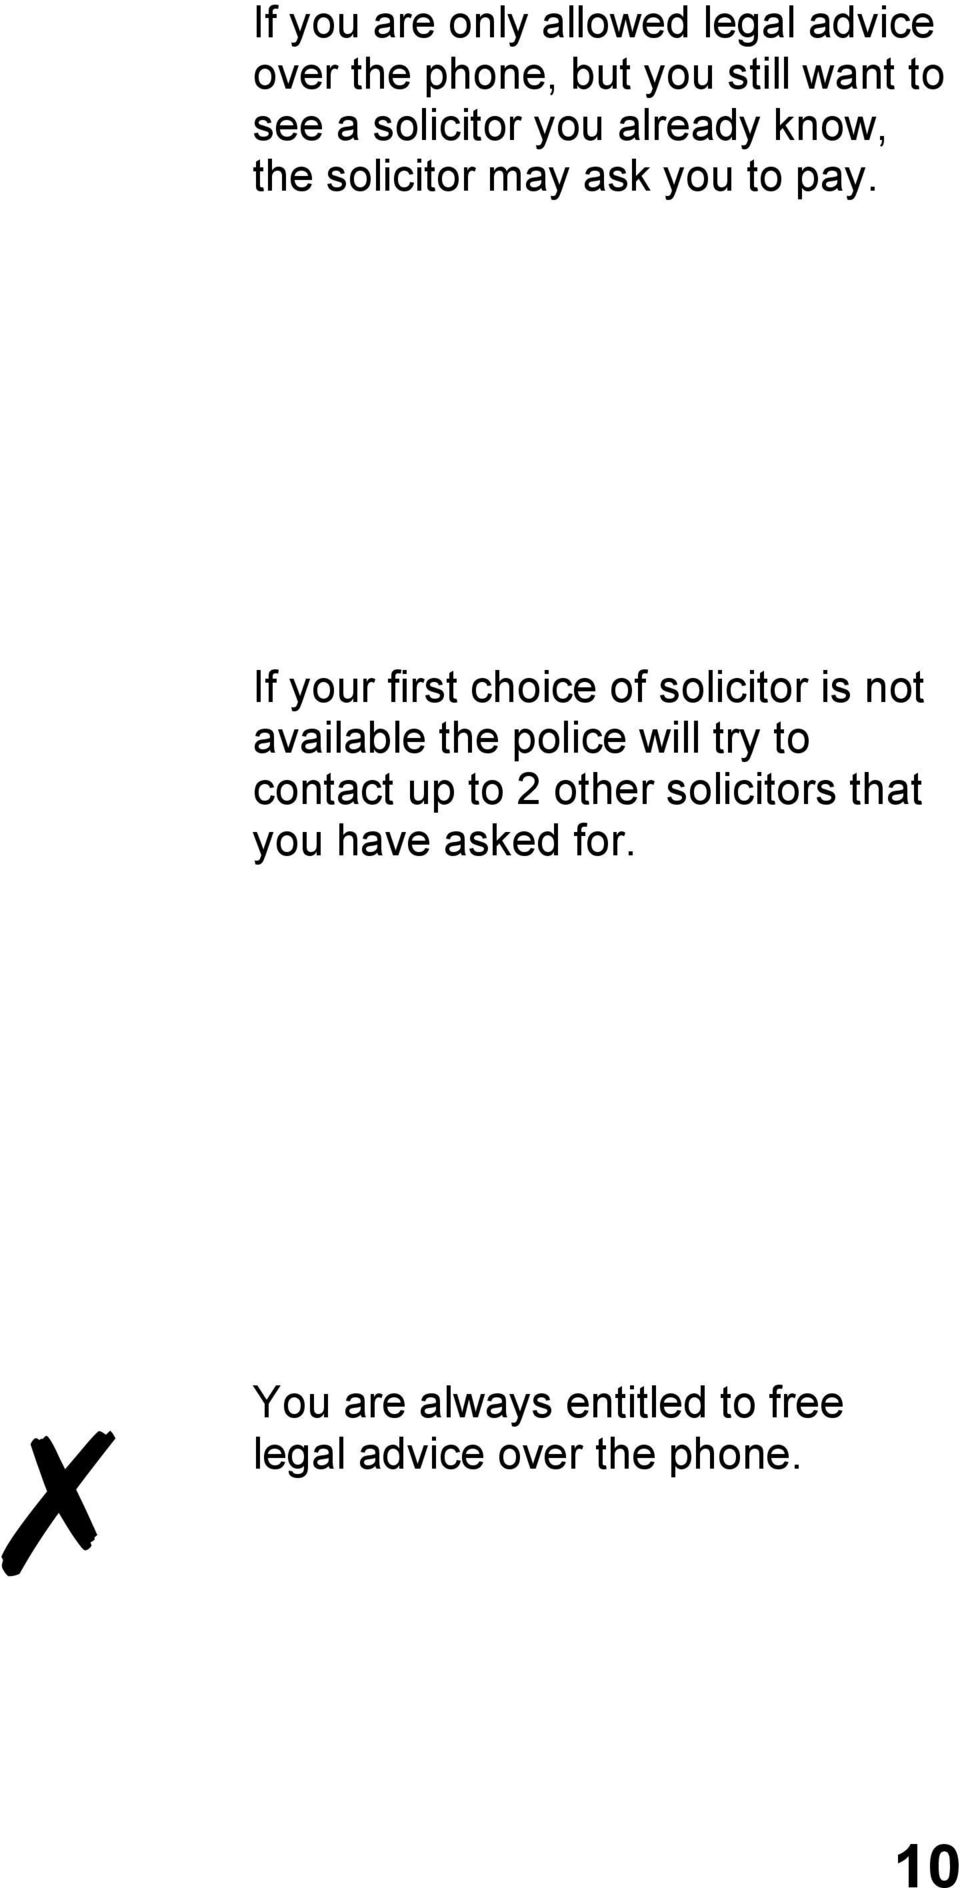 If your first choice of solicitor is not available the police will try to contact up